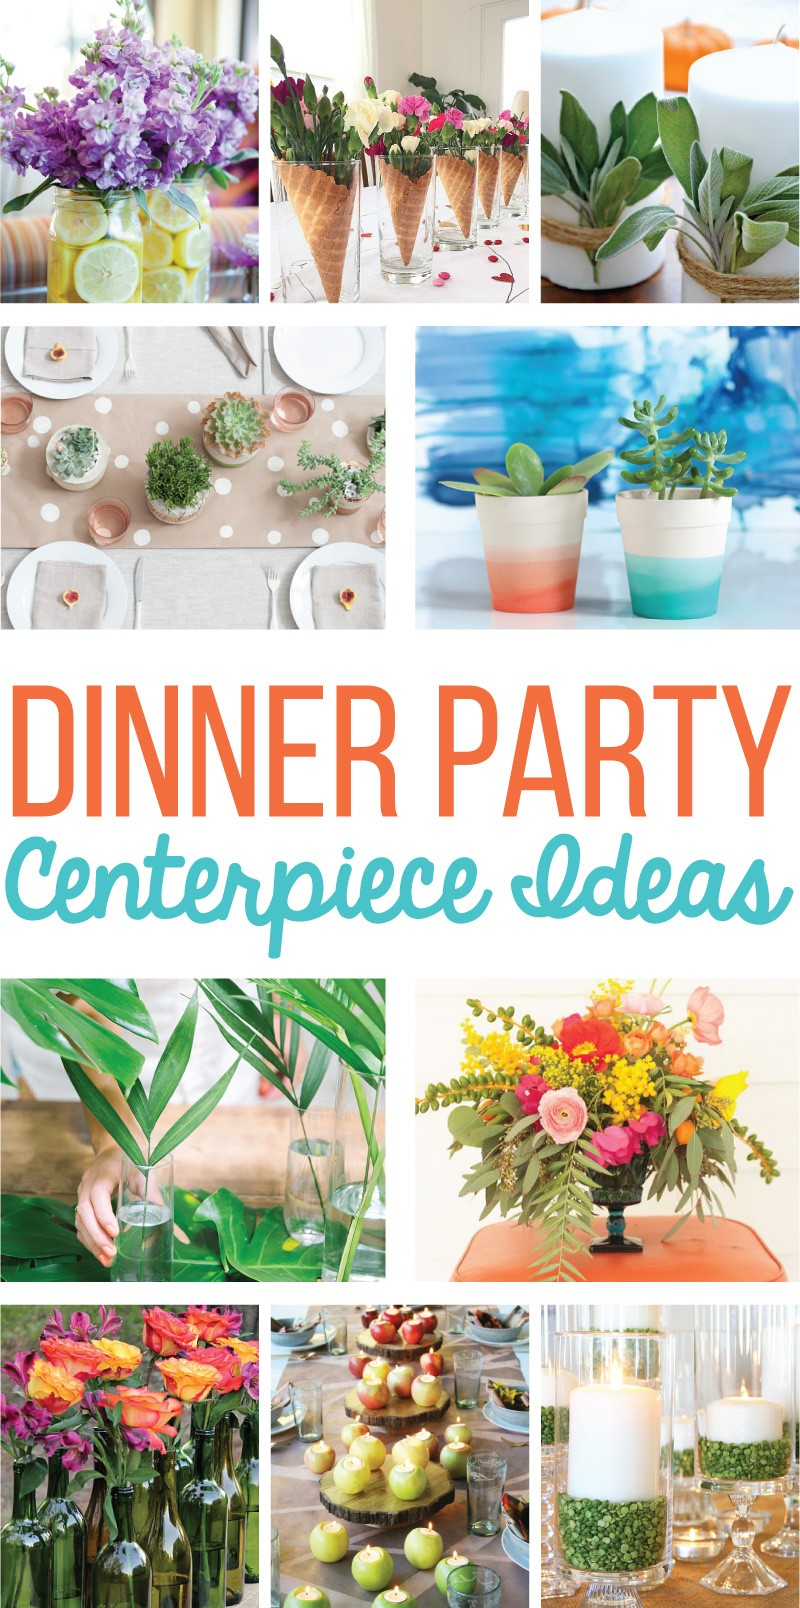 15 Easy Centerpiece Ideas for a Dinner Party on Love the Day